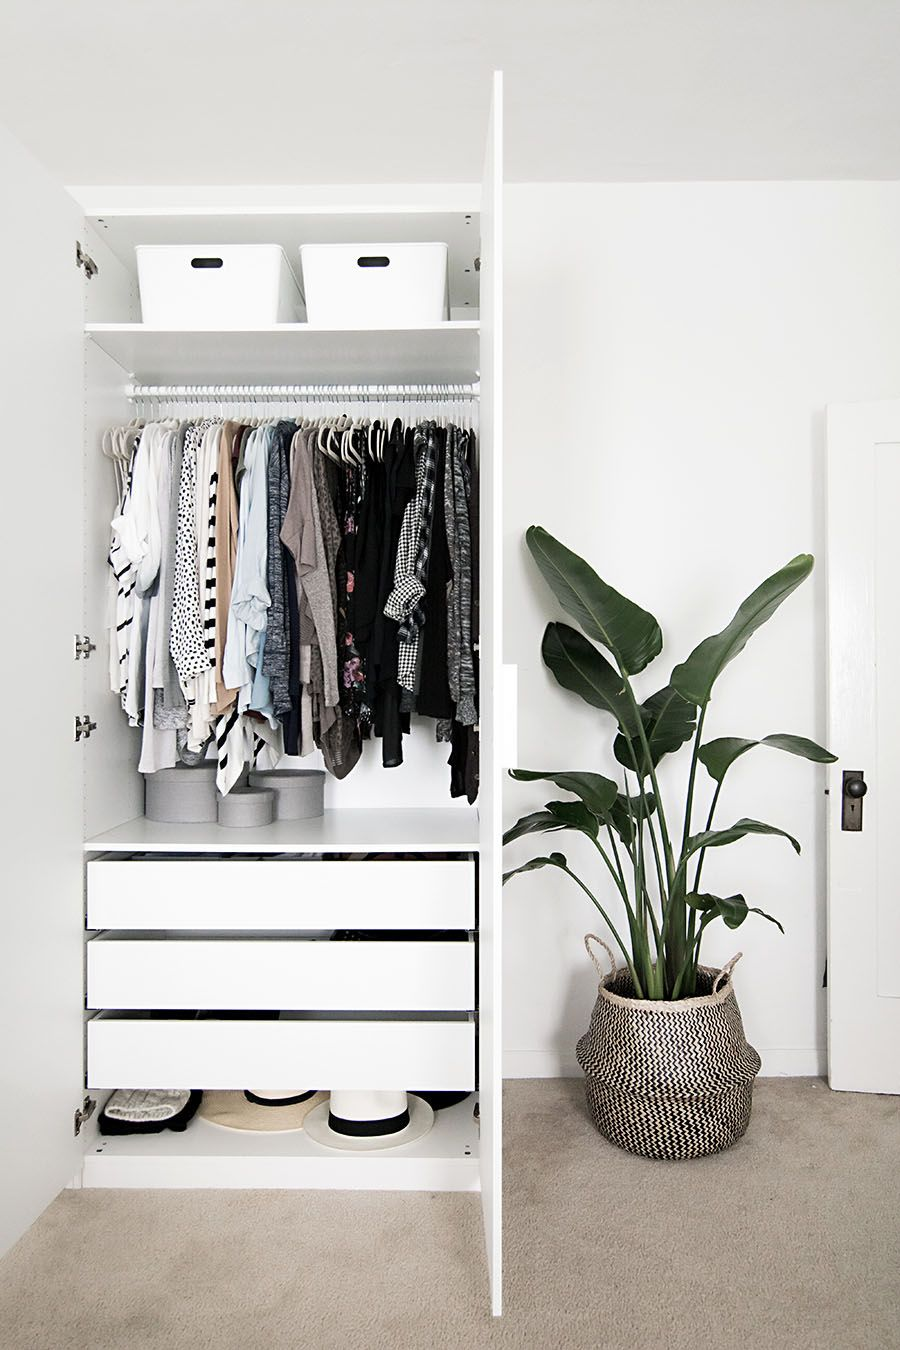 Hideaway Storage Ideas for Small Spaces | Storage ideas, Small ...